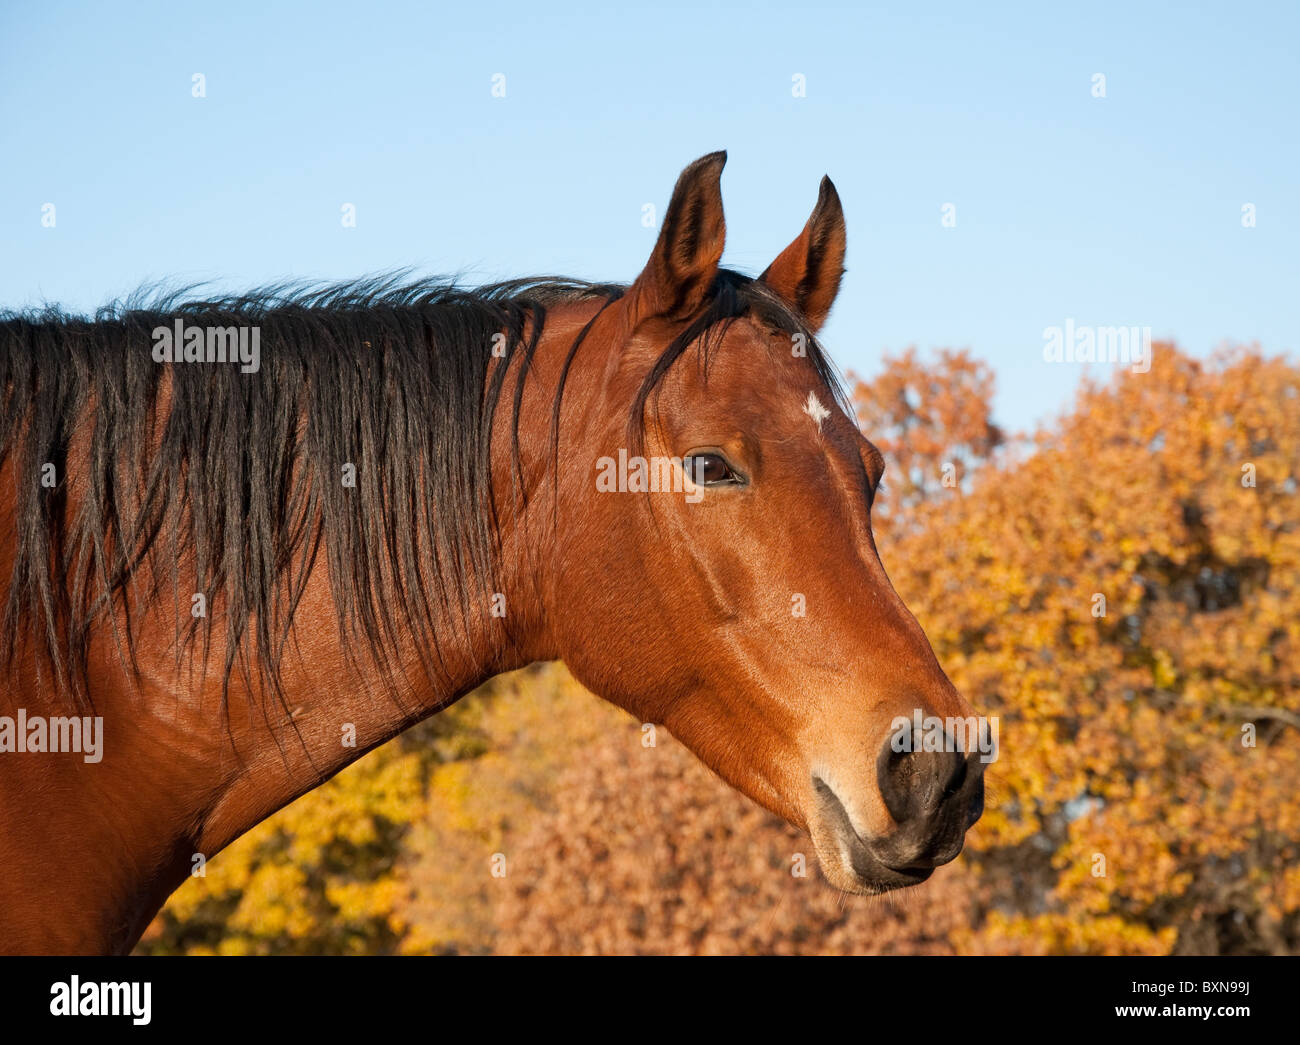 Red bay Arabian horse against trees in fall colors and clear blue skies Stock Photo